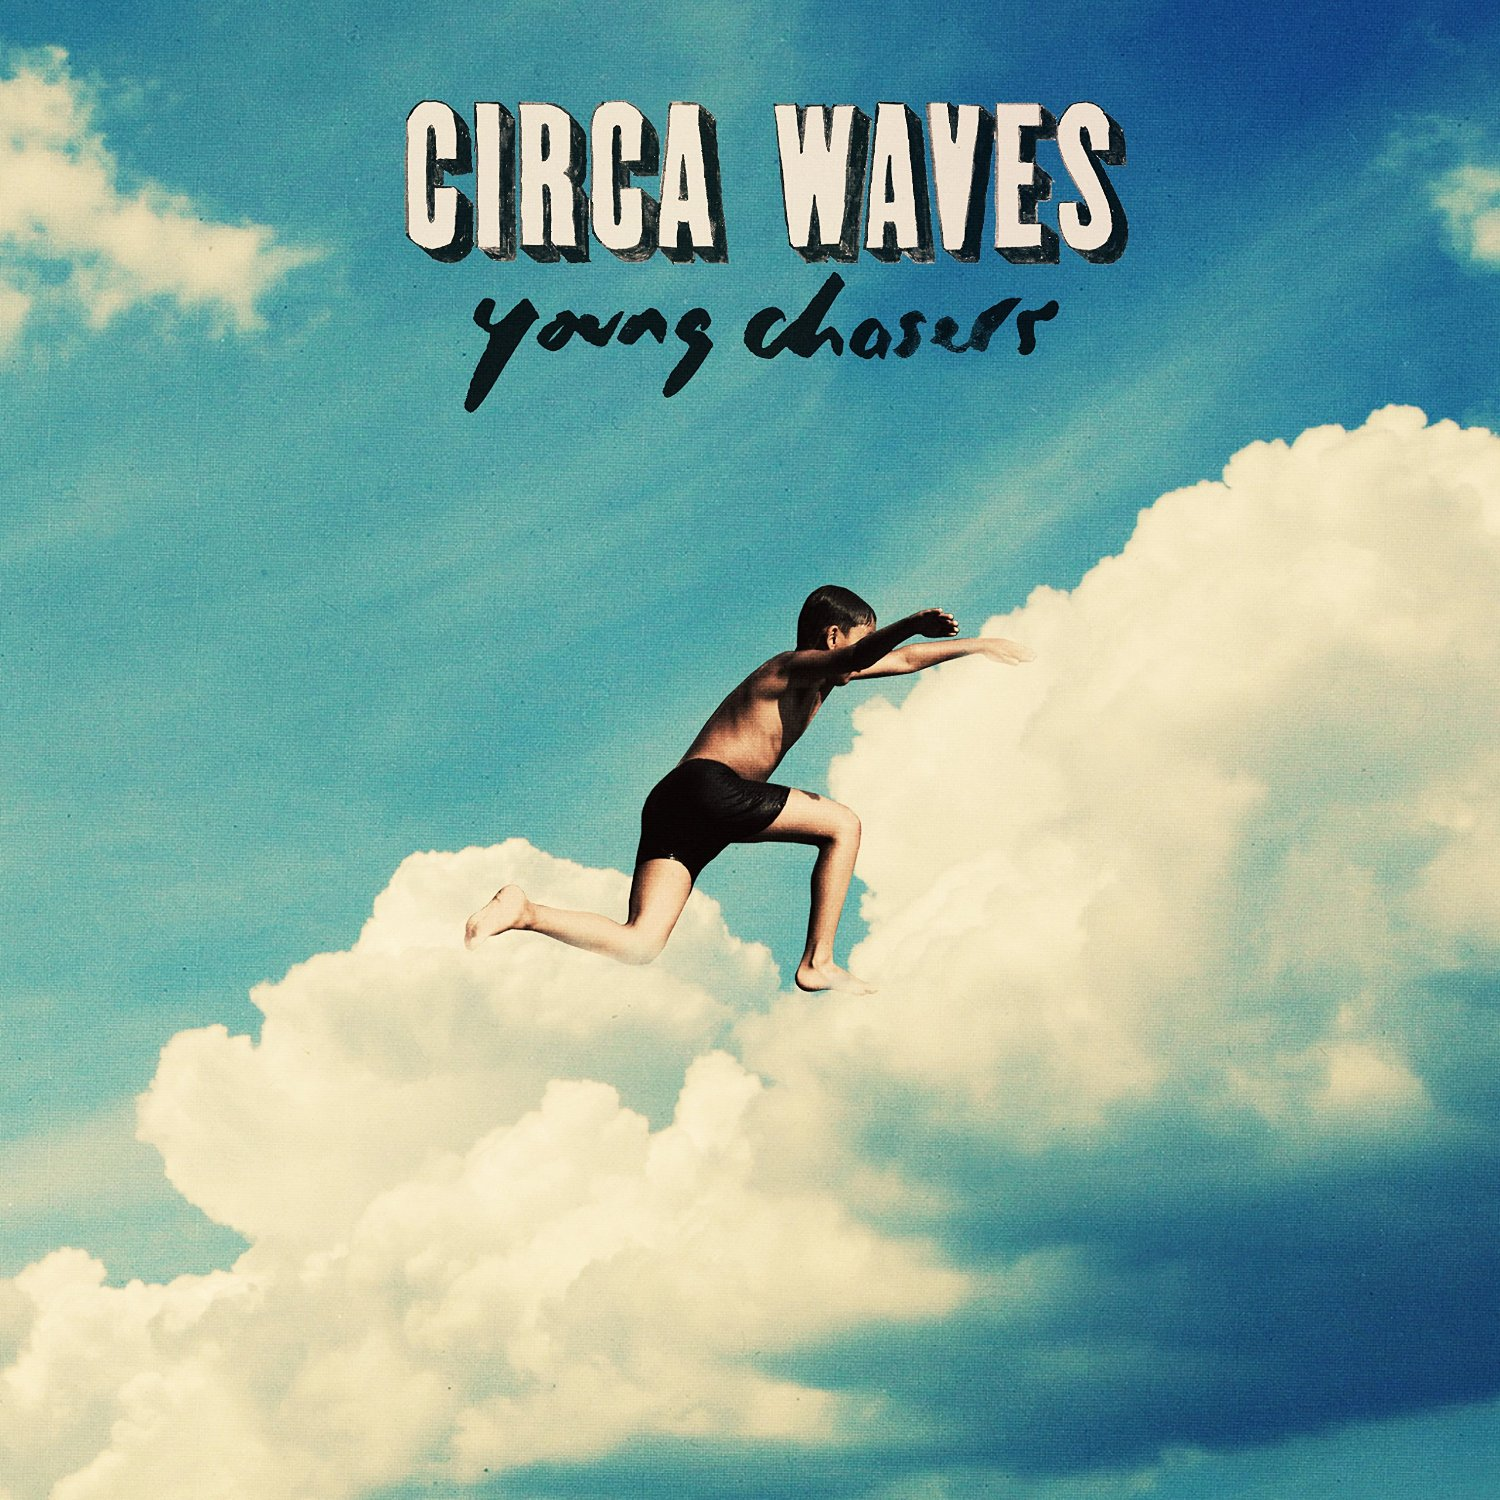 circawaves youngchaser Cover